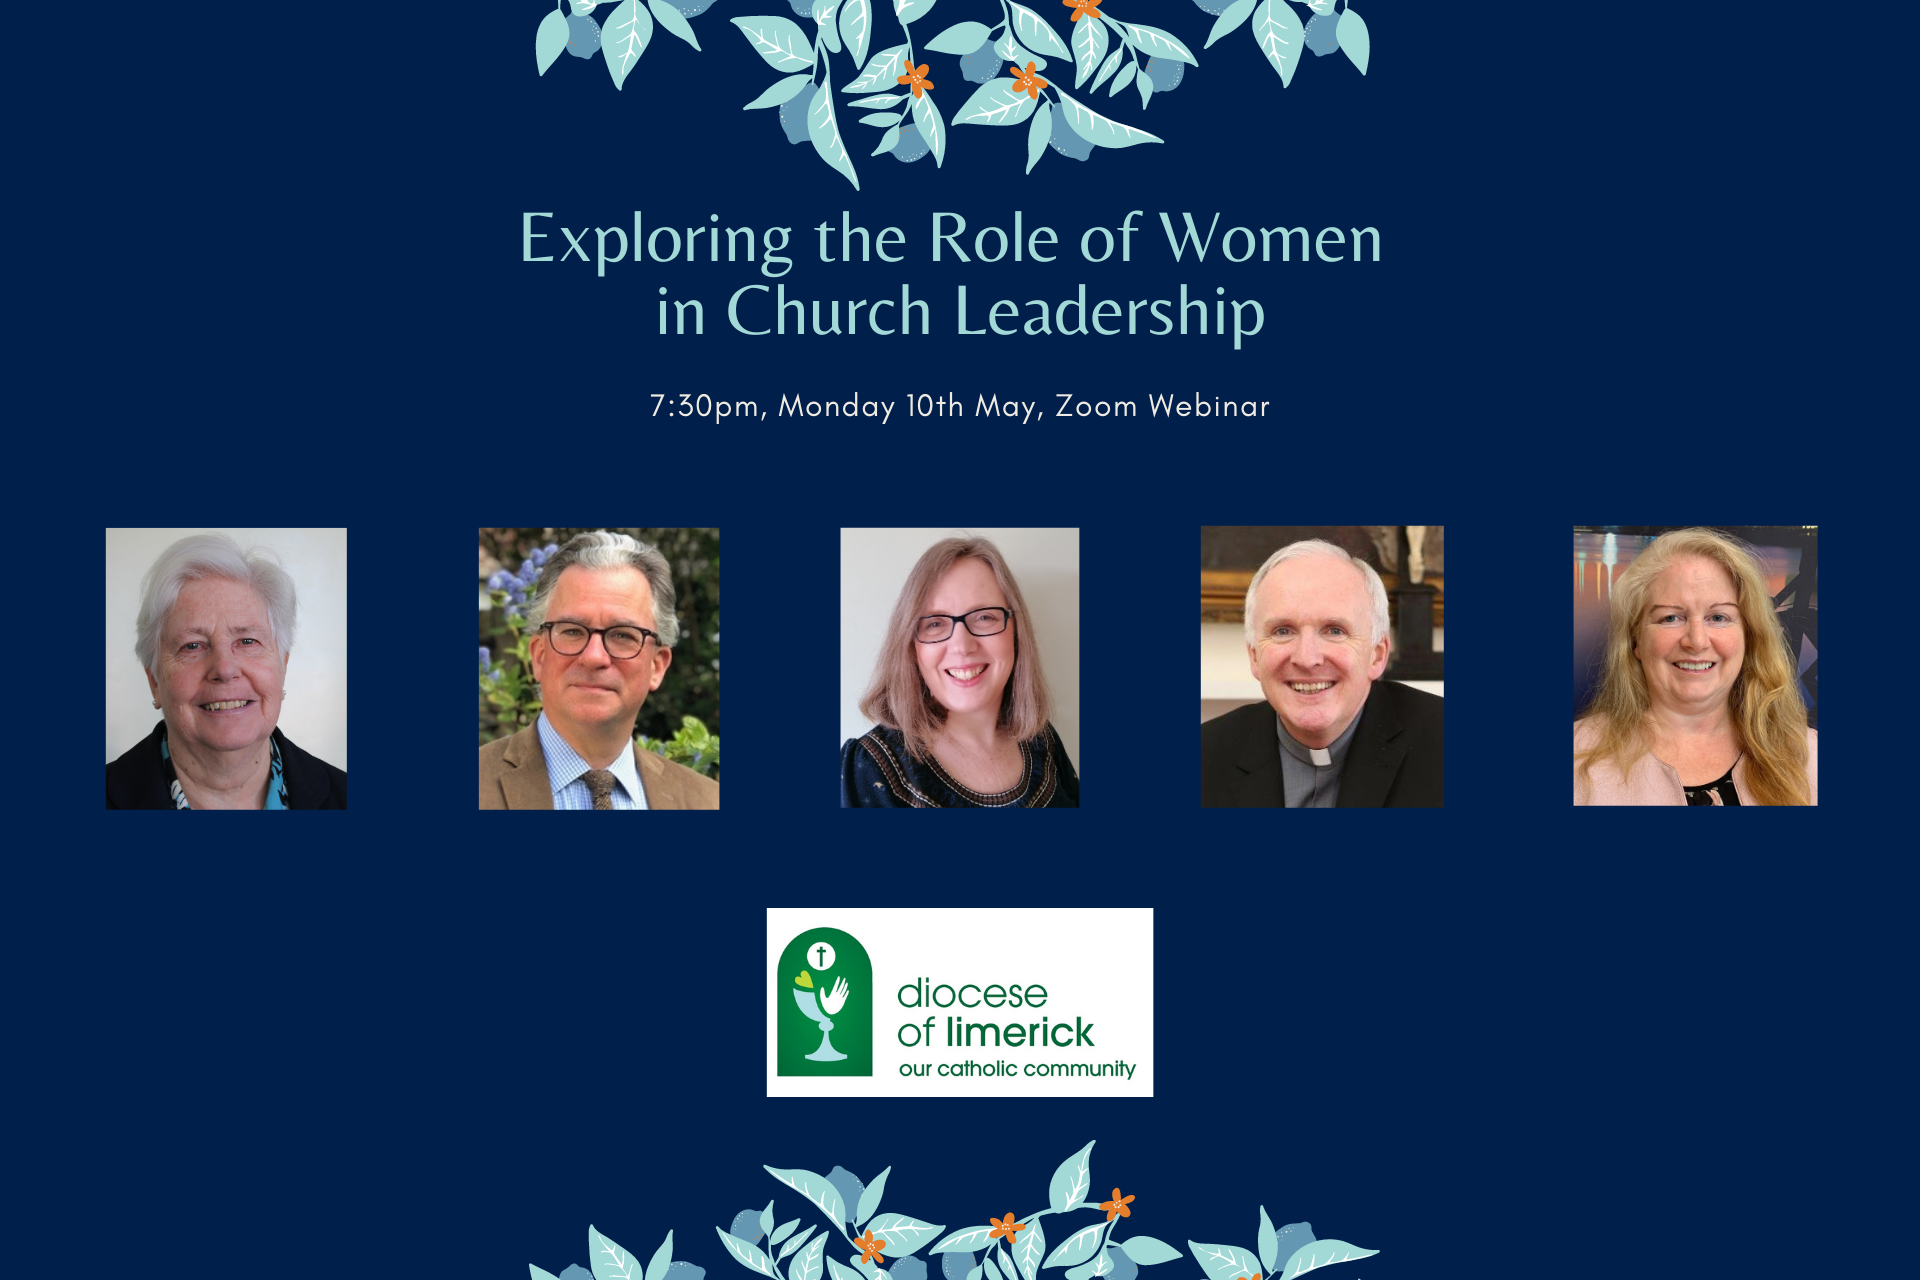 Exploring the Role of Women in Church Leadership Webinar